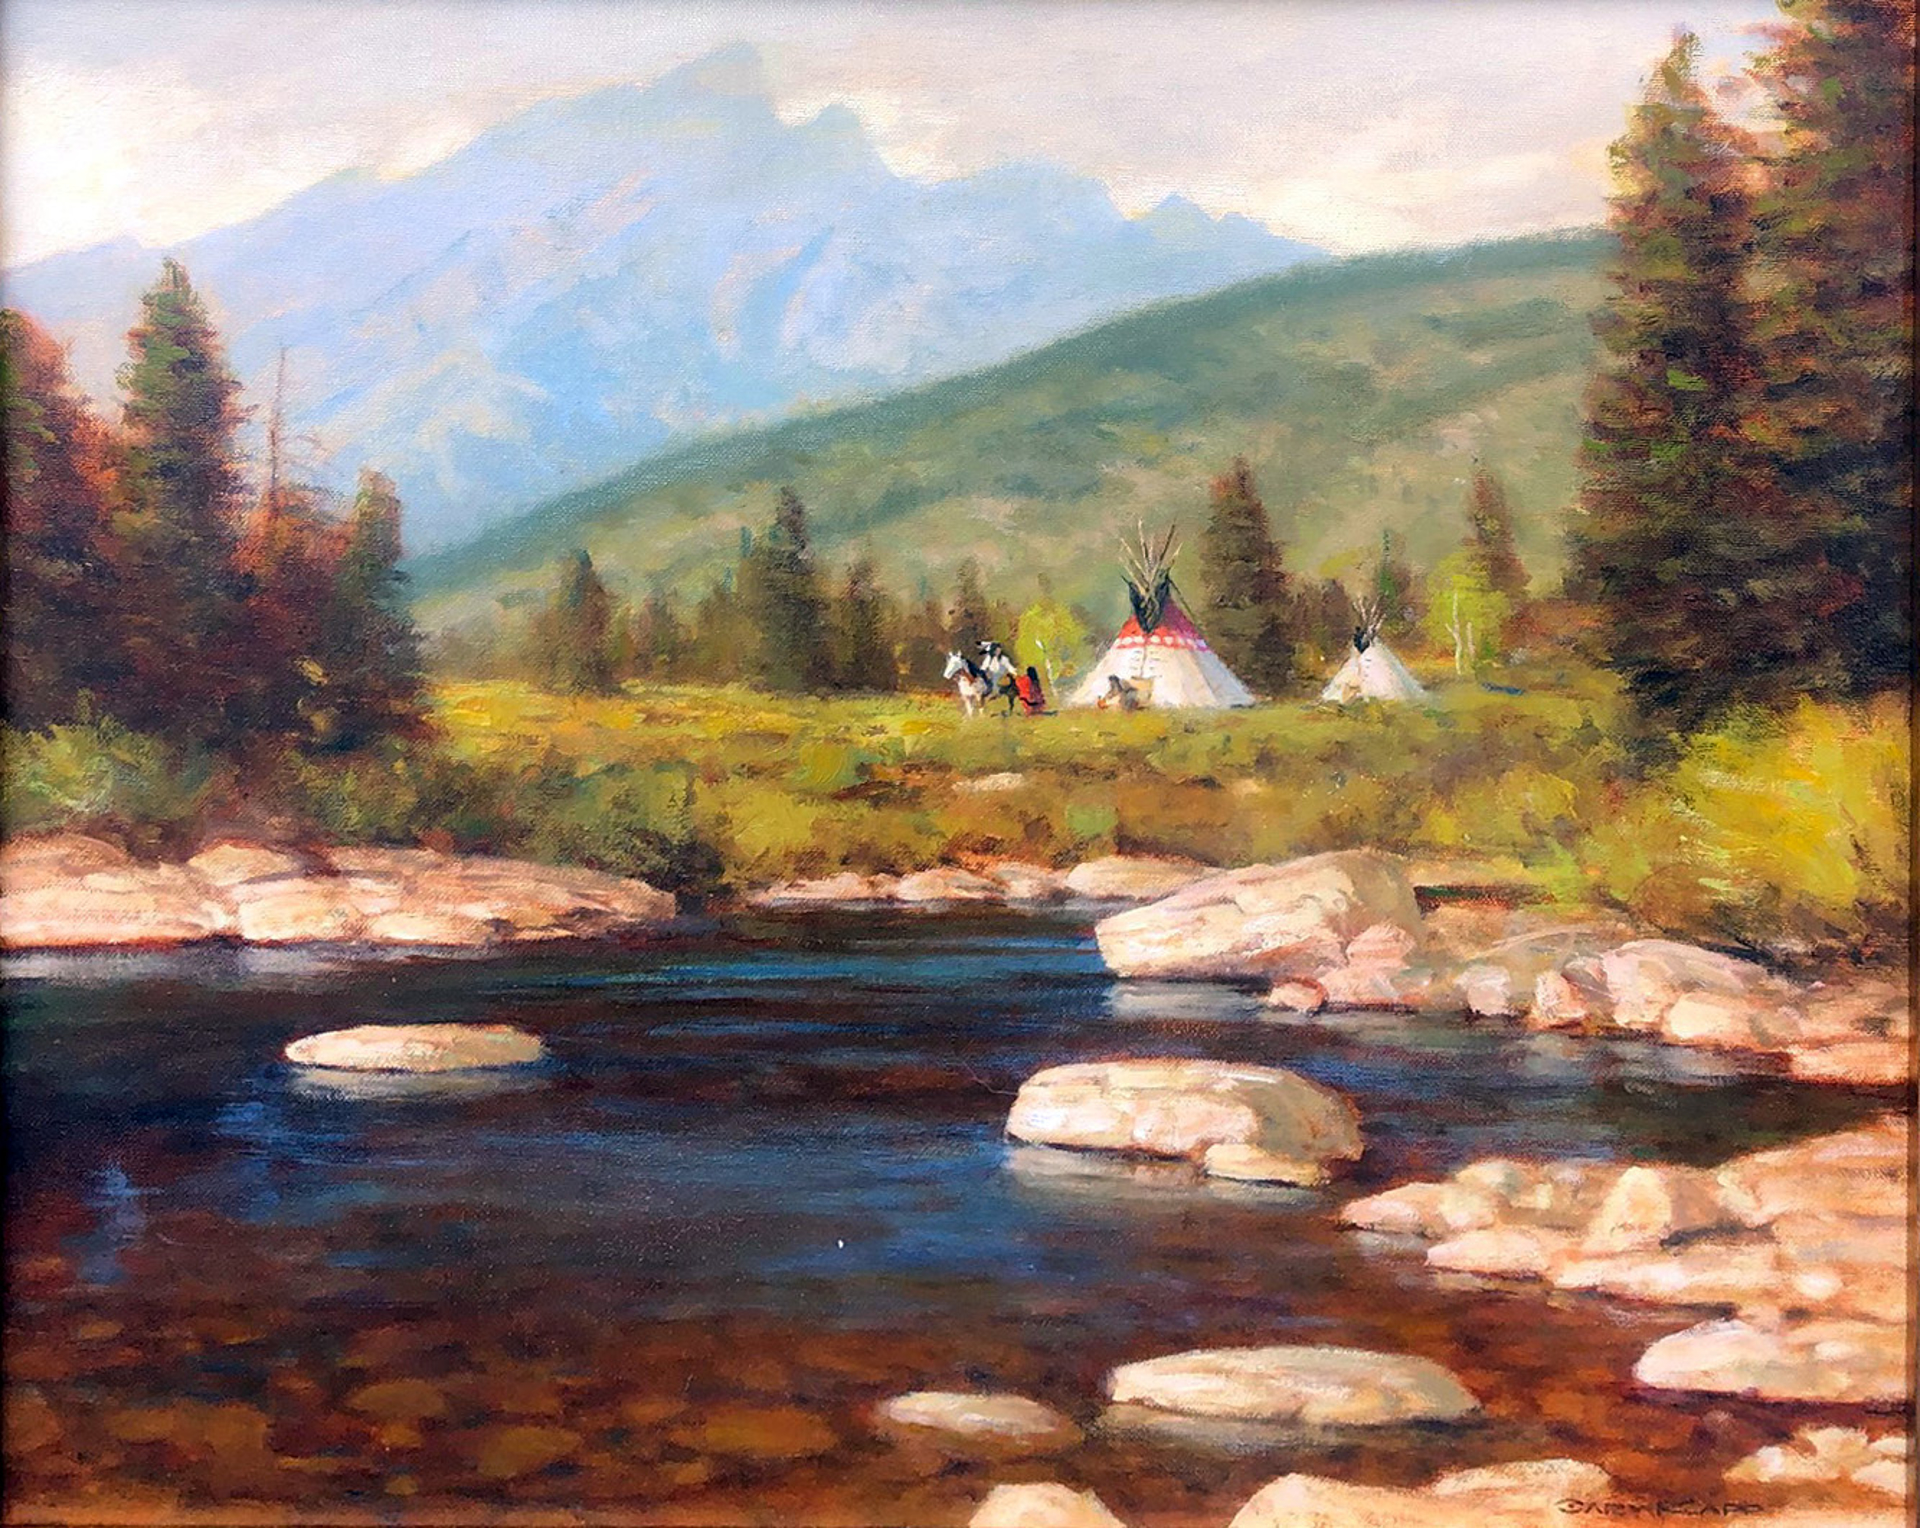 In the Valley of the Shining Mountains by Gary Kapp